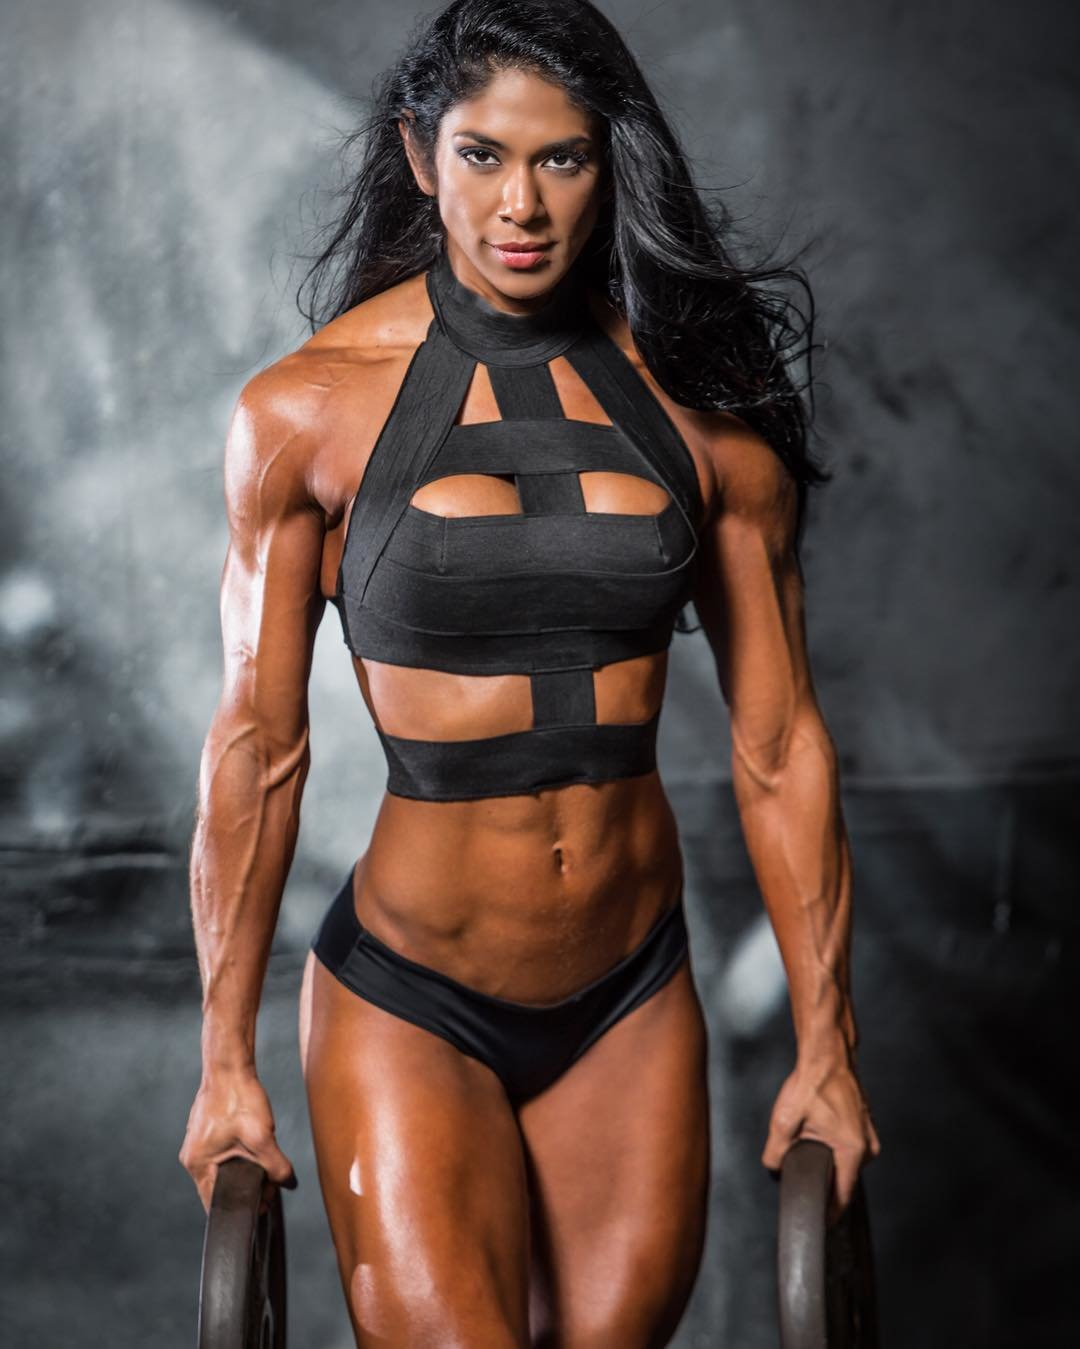 Female bodybuilder bikini pictures — img 6